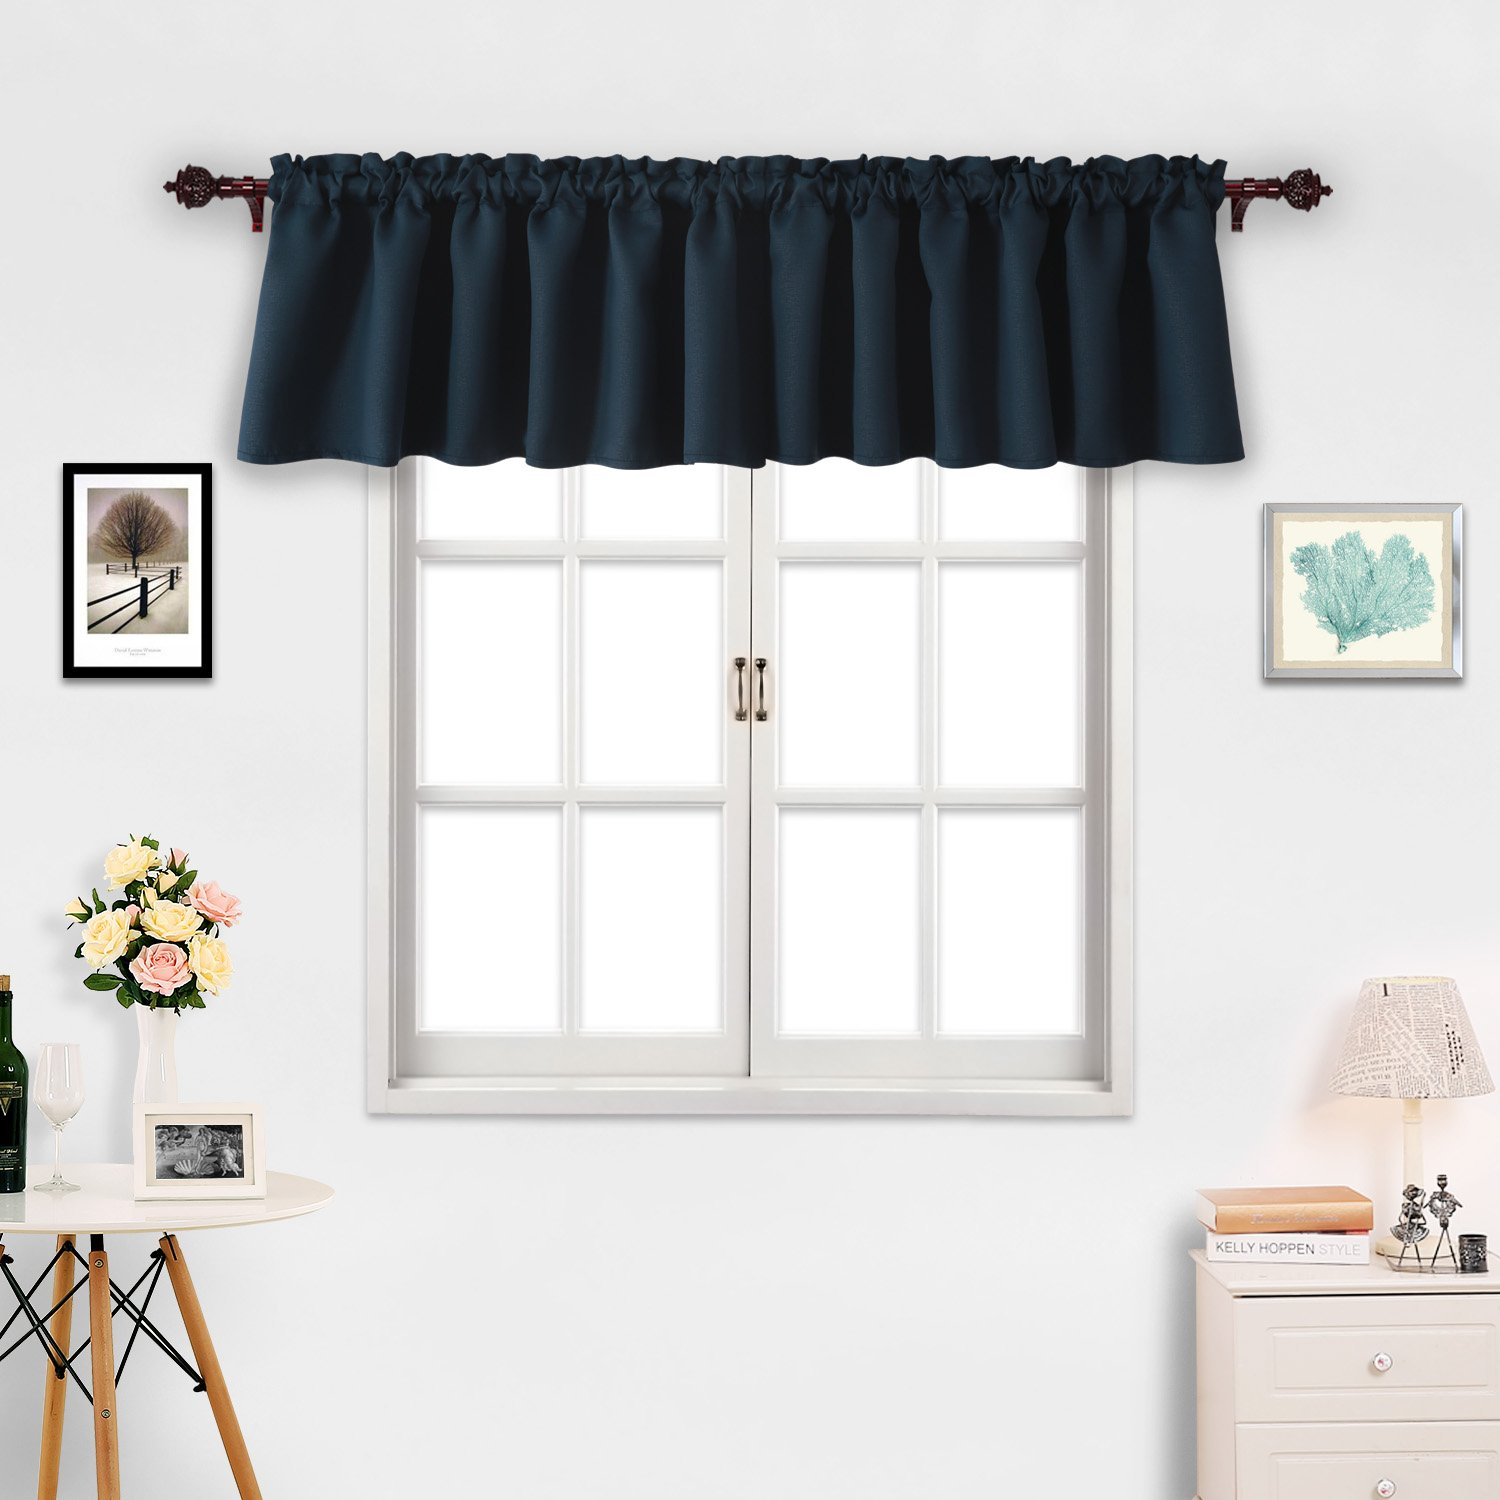 Deconovo Window Valances Kitchen Valance Textured Embossed Blackout Valance Rod Pocket Curtain 52x18 Inch Star White 2 Panels